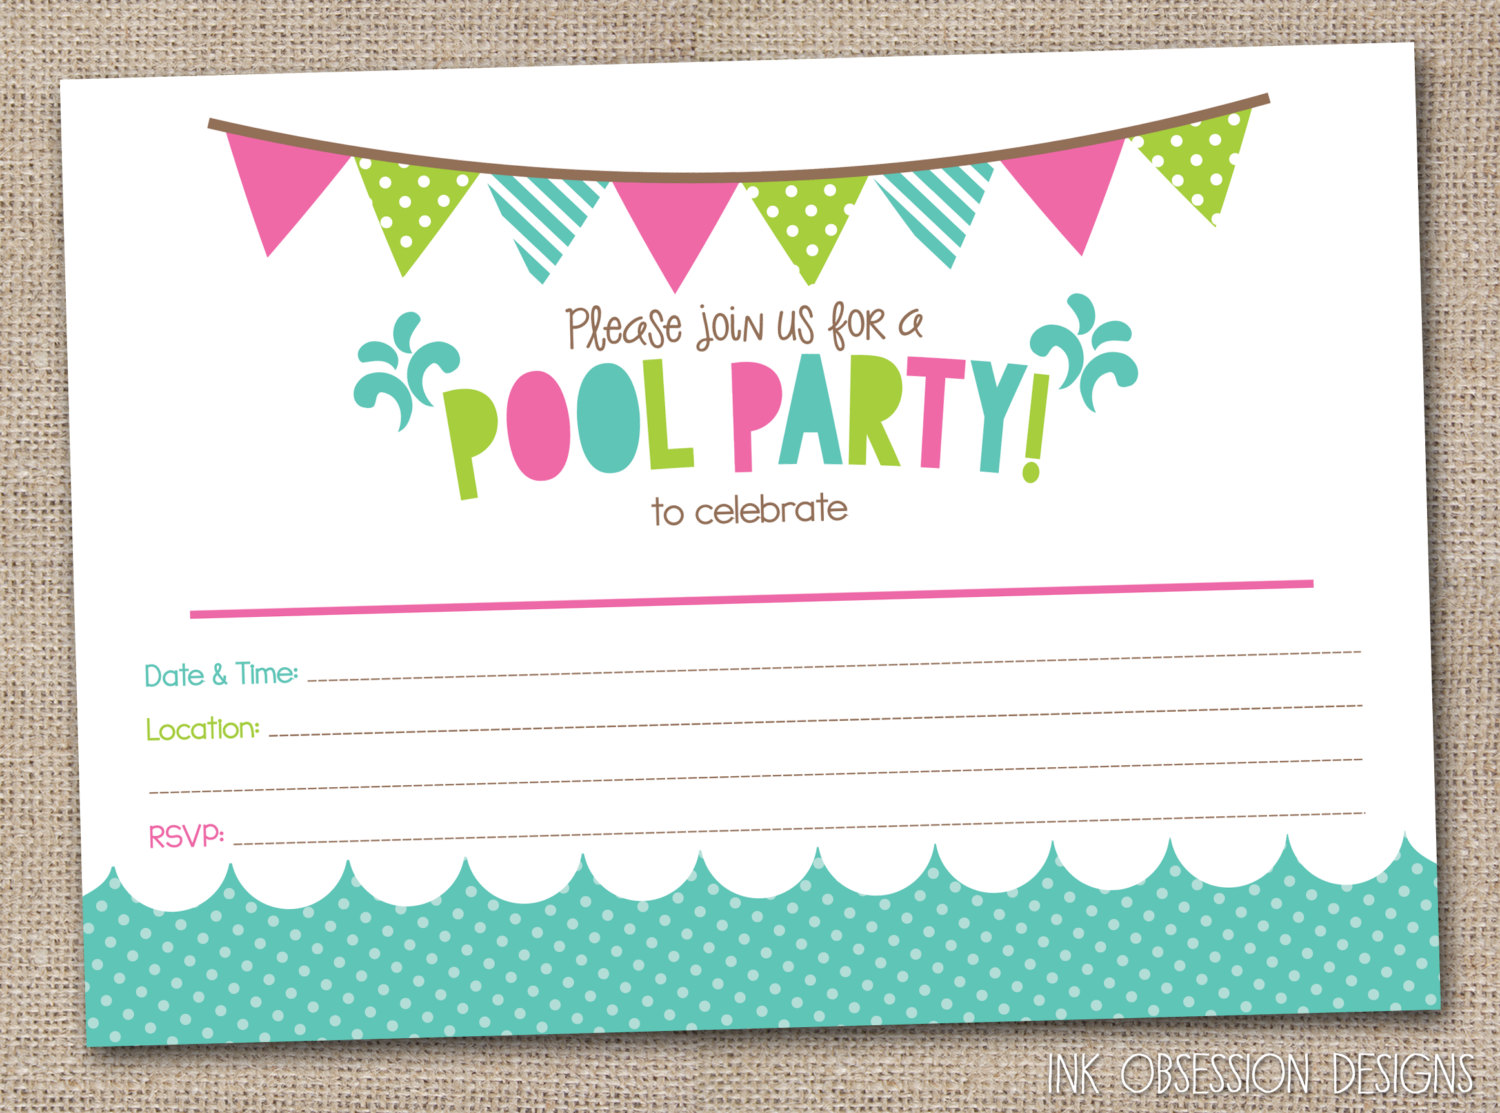 1000+ Images About Invites & Blanks On Pinterest